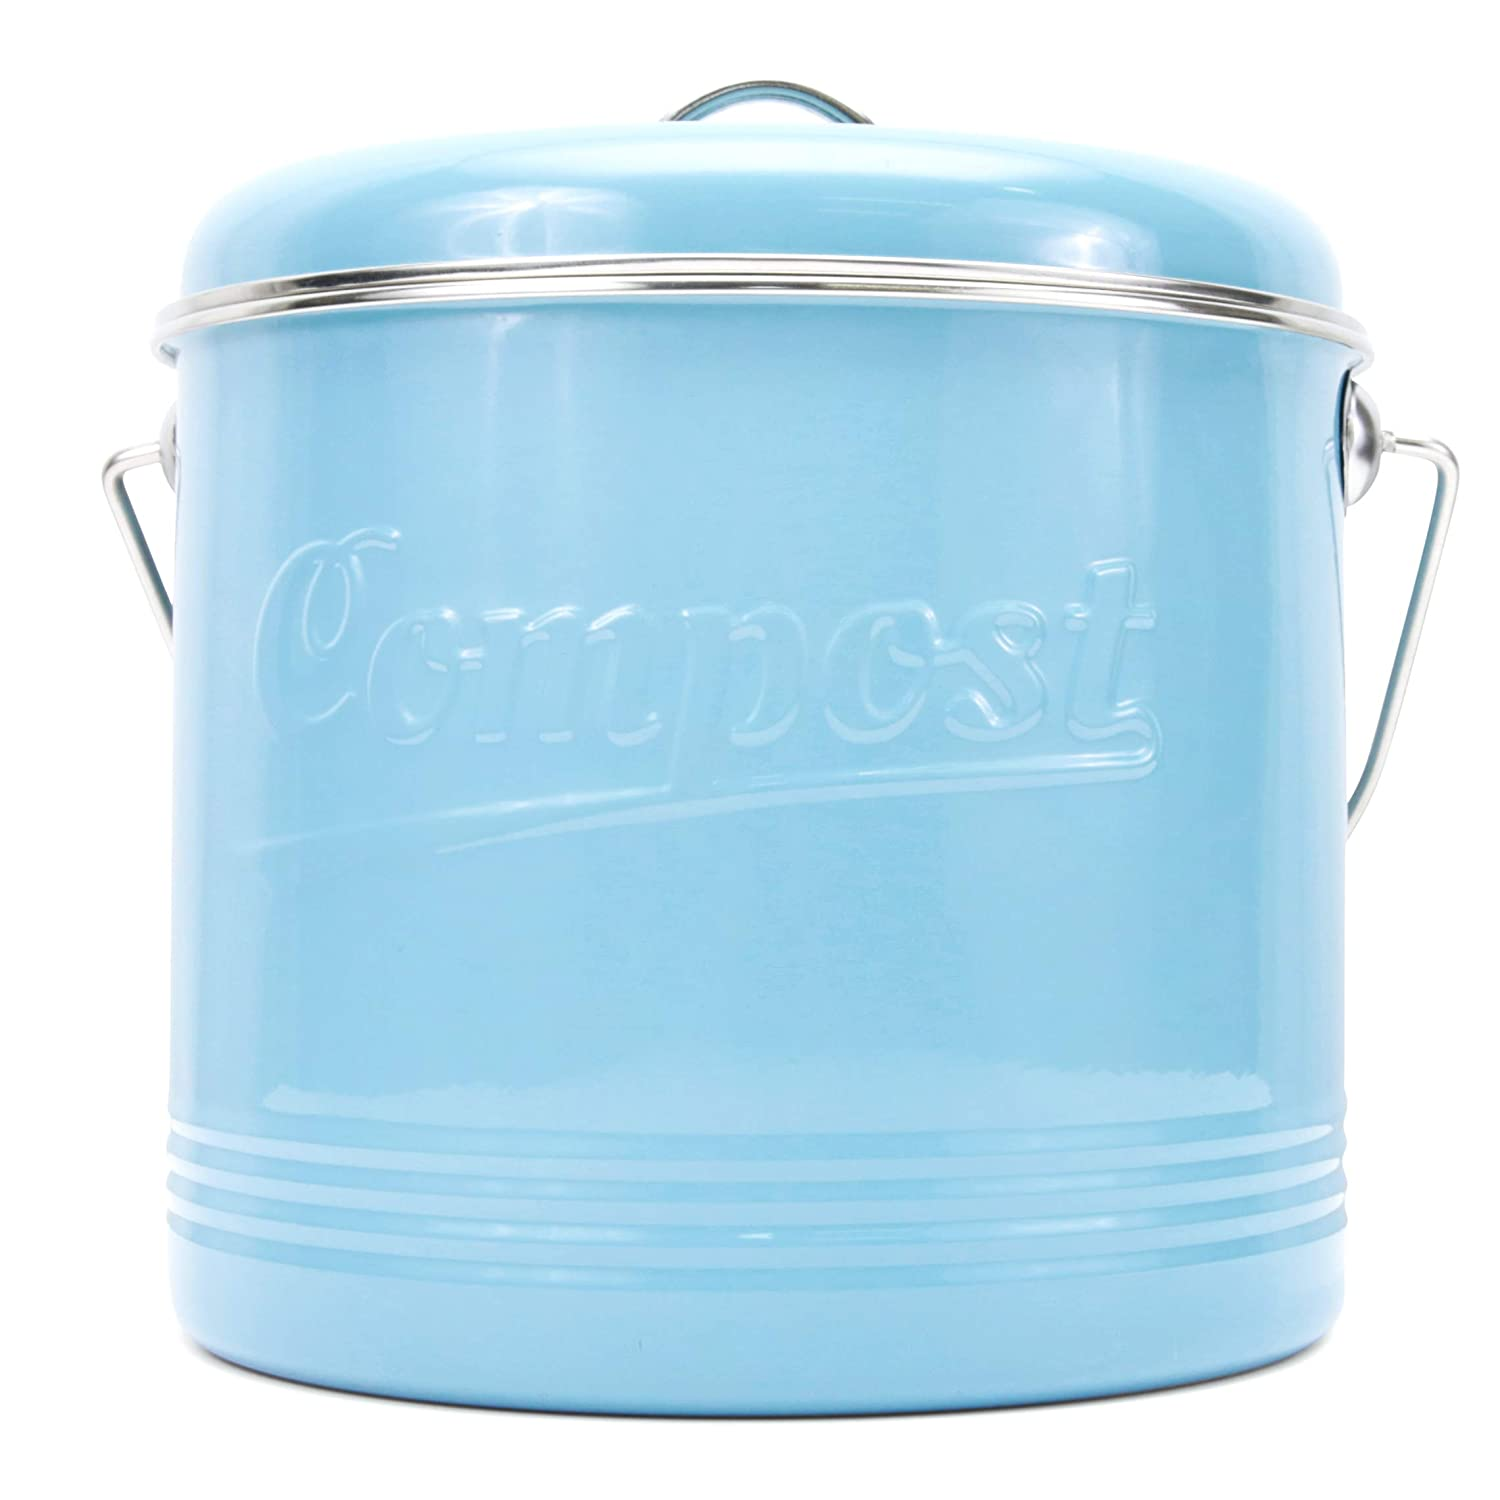 Compost Bin with 7 Free Charcoal Filters by Silky Road - 1.3-Gallon / 5-Liter - Embossed Retro Blue Powder-Coated Carbon Steel - Kitchen Pail with Lid, Trash Keeper Container Bucket, Recycling Caddy Silky Road Products